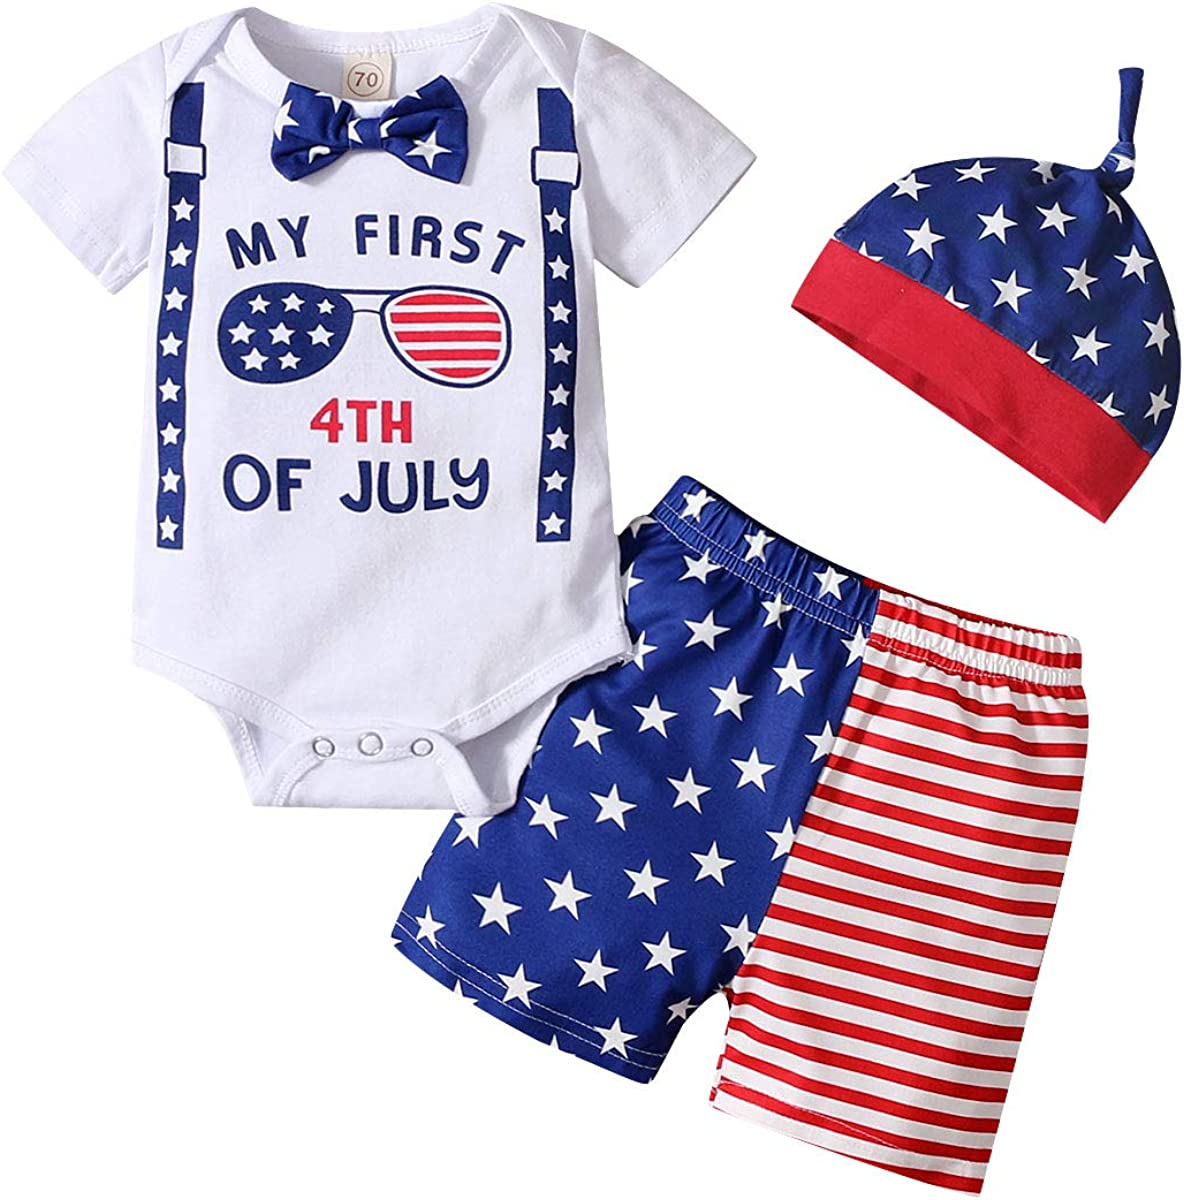 My First 4th Ranking TOP17 of July Outfit Baby Romper Flag American Boy Shorts SALENEW very popular